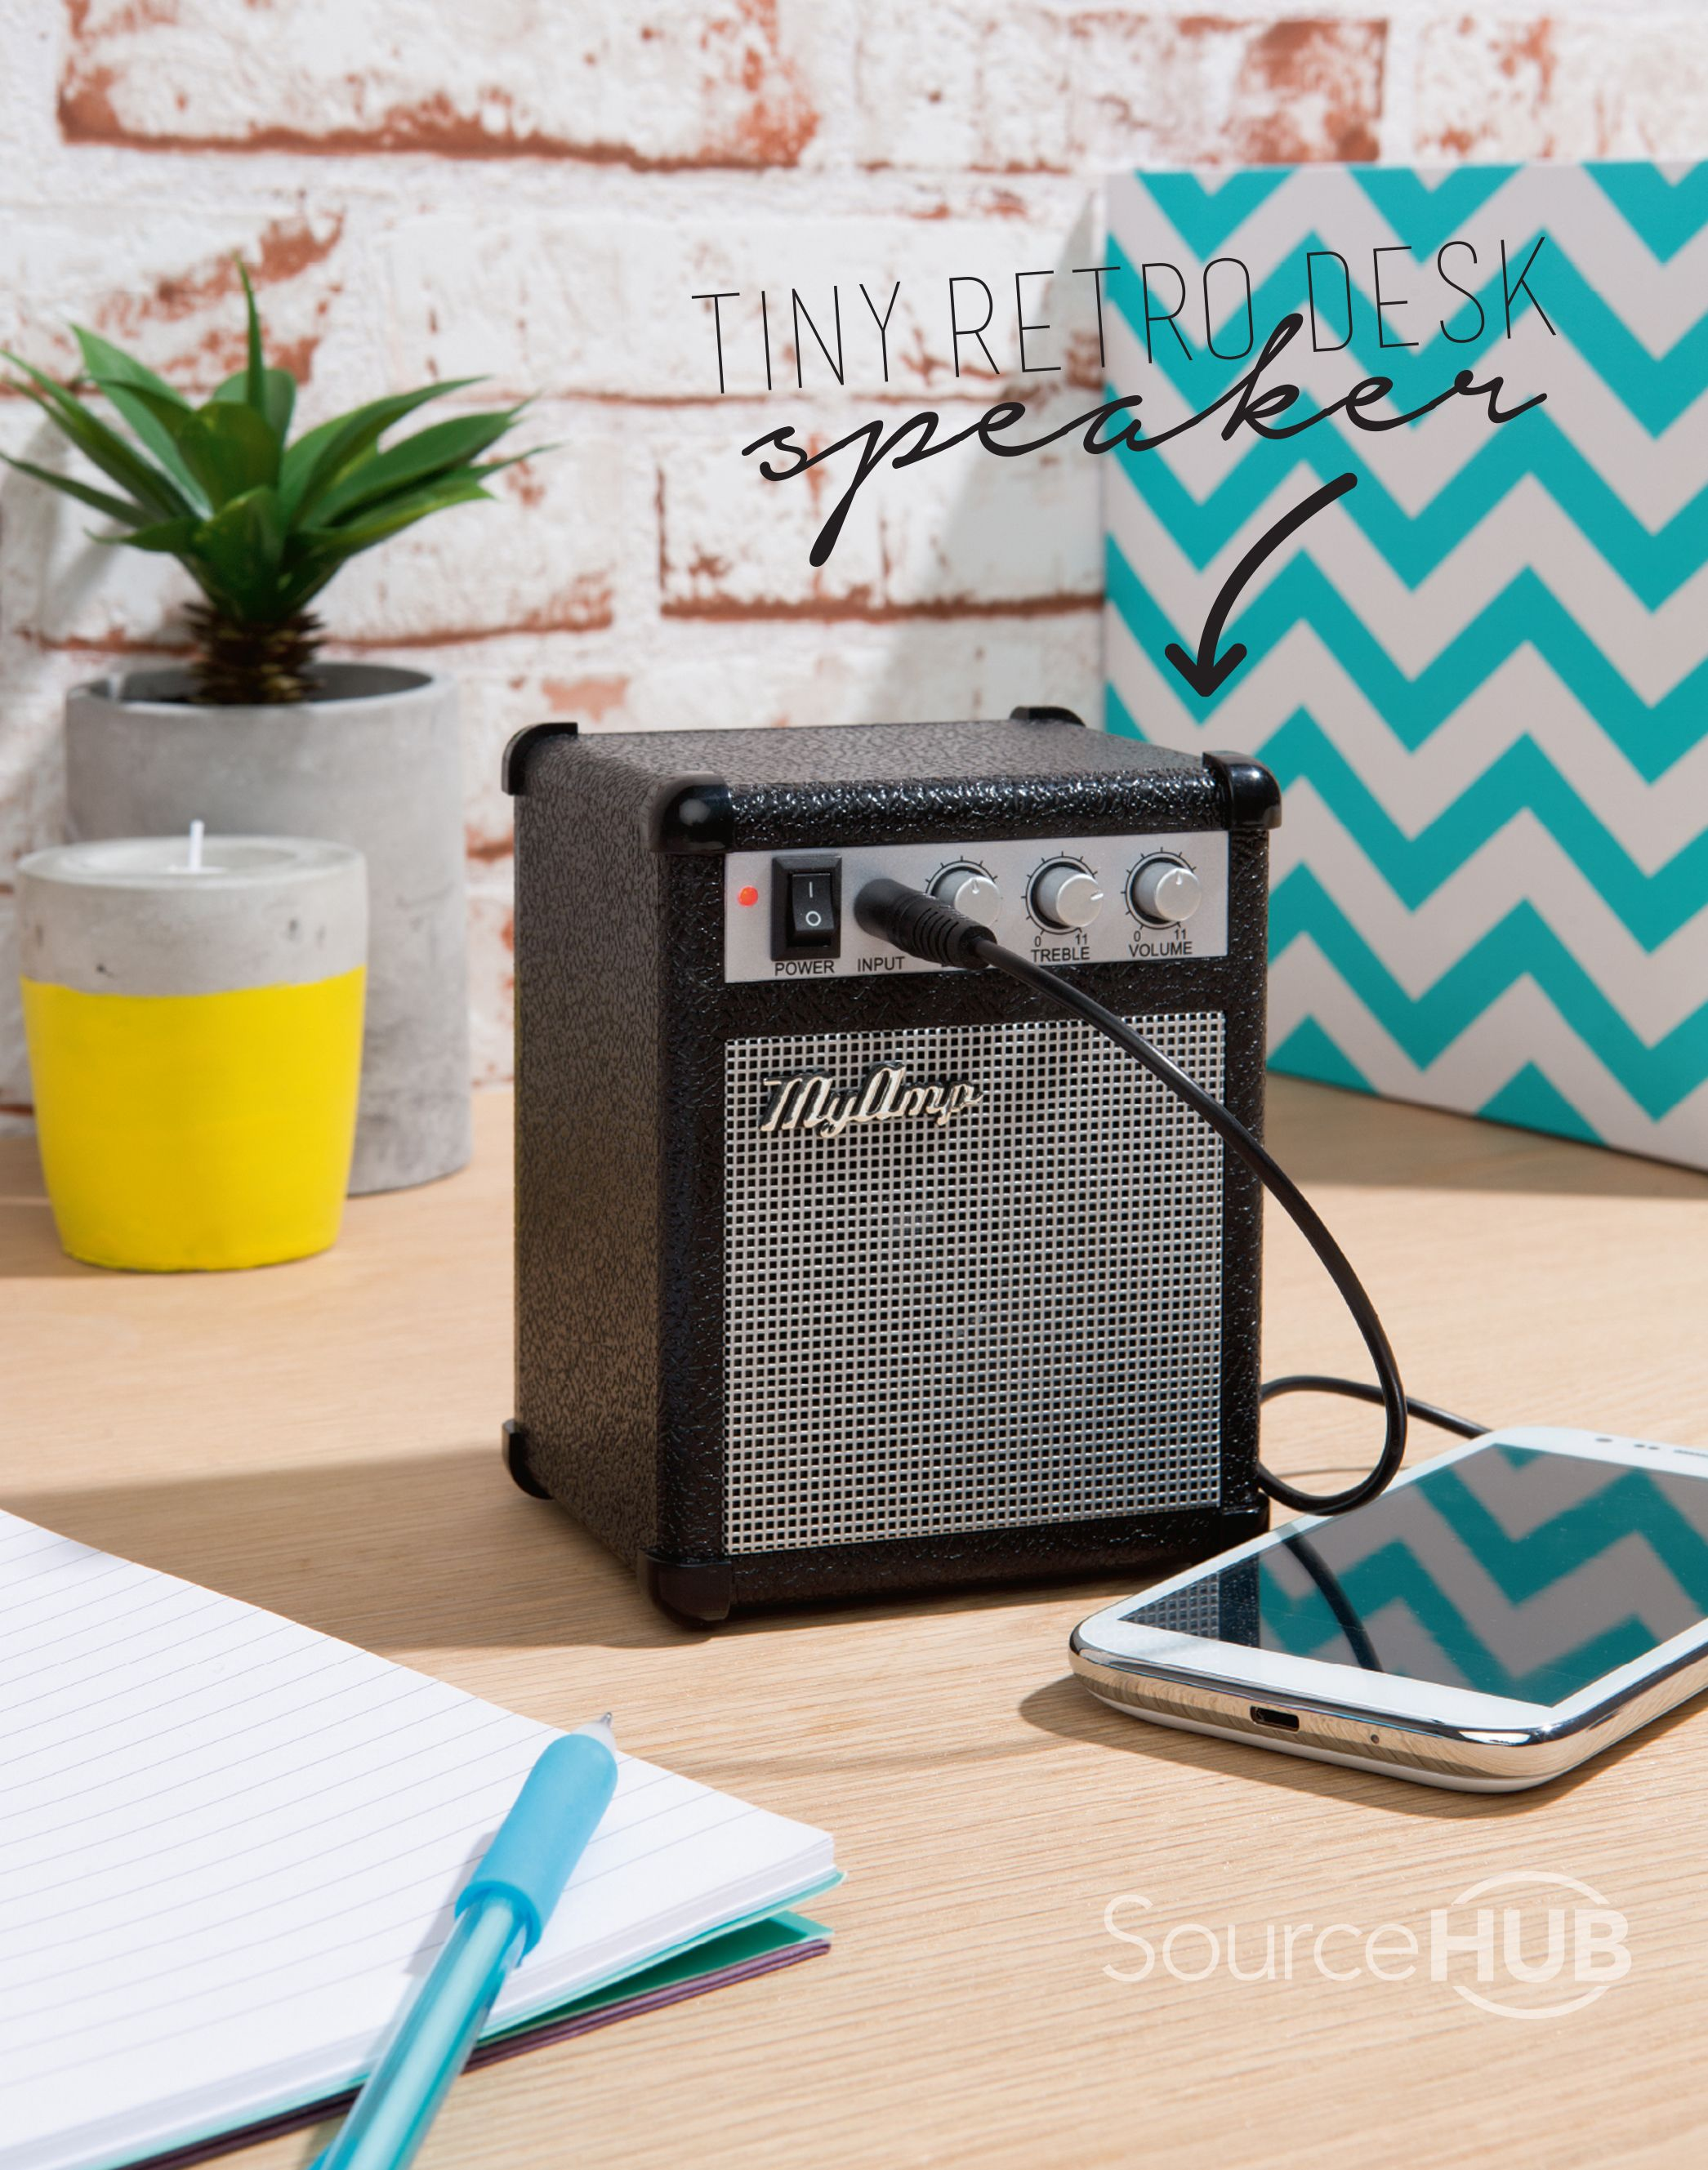 This tiny retro speaker is the cutest addition to your desk - Kmart, Australia.  - SourceHub group